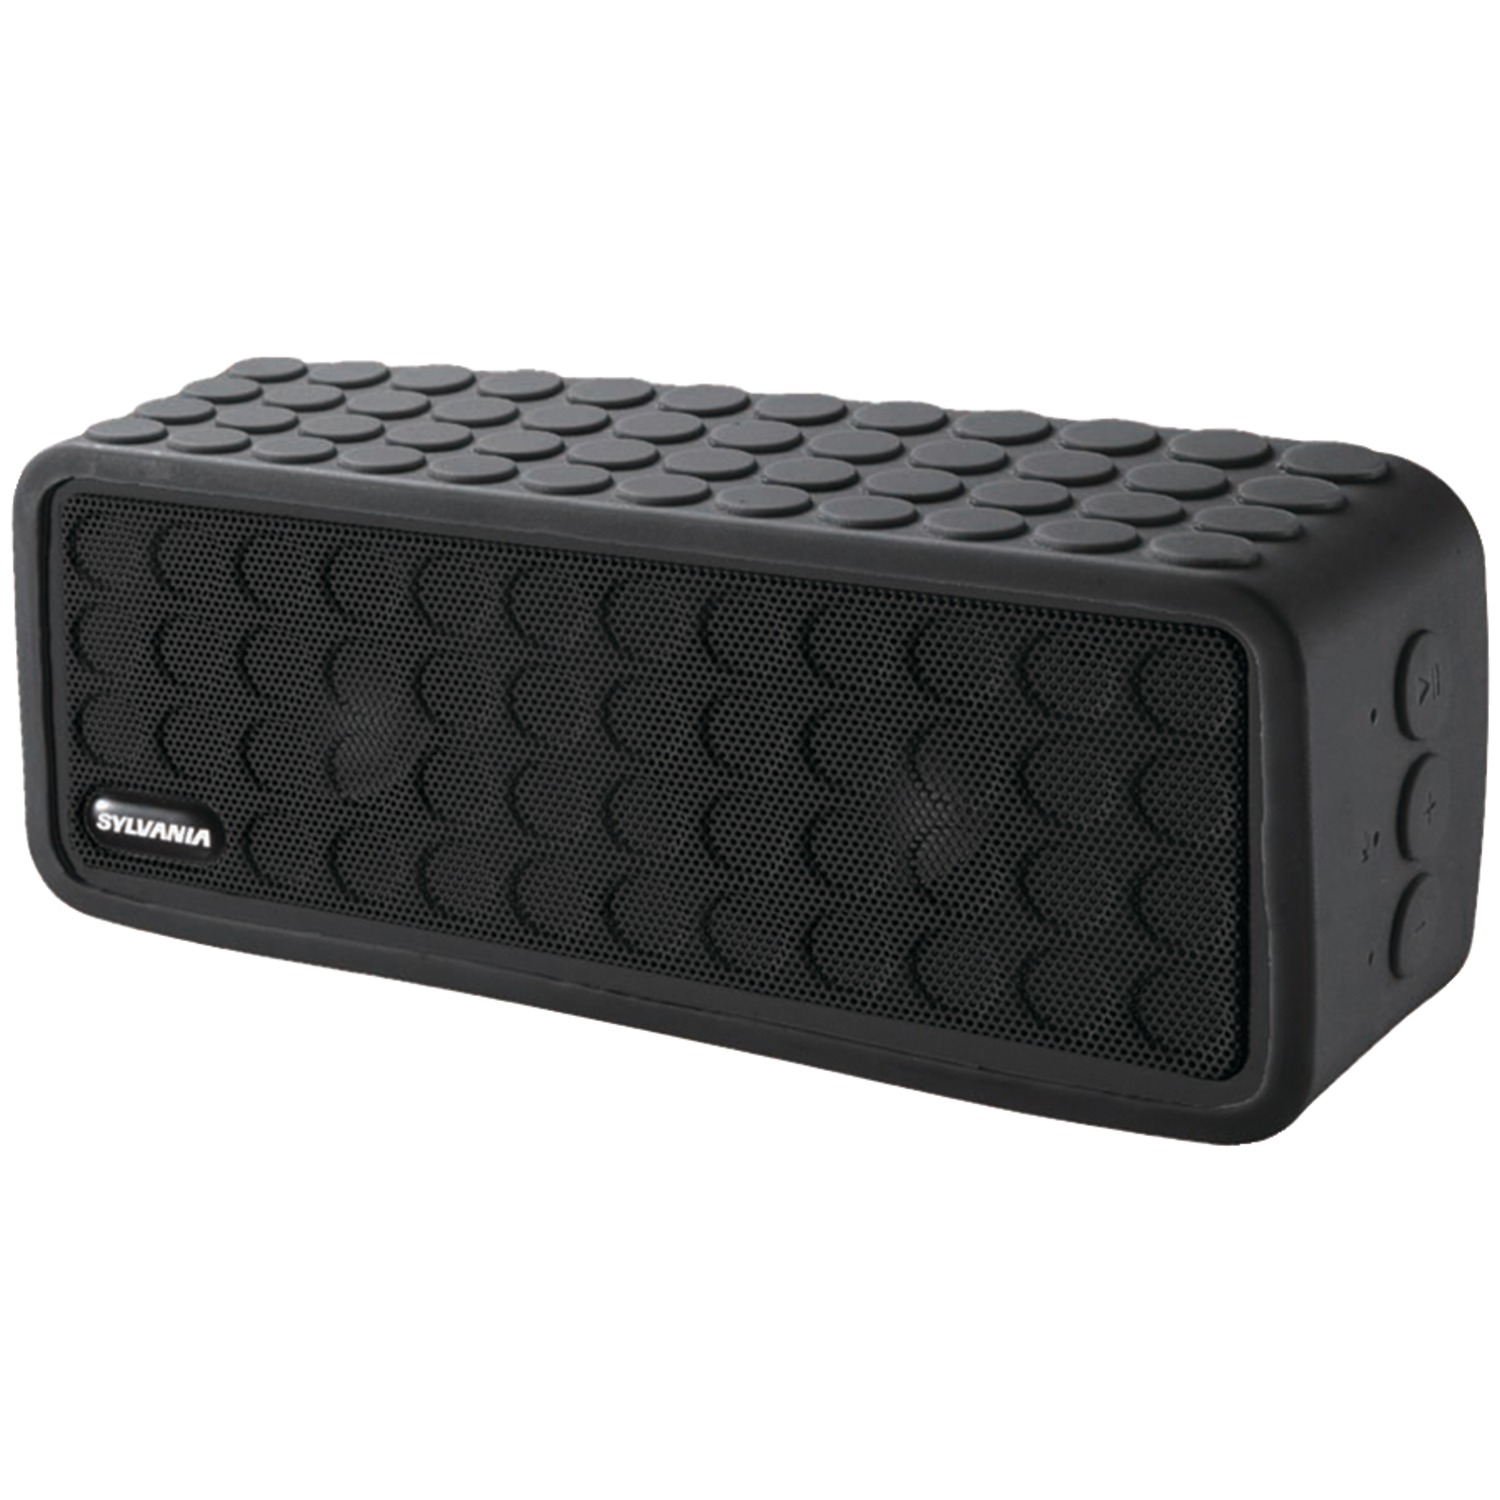 Sylvania Sp258-black Bluetooth Mini Speaker With Silicone Protective Cover (black)